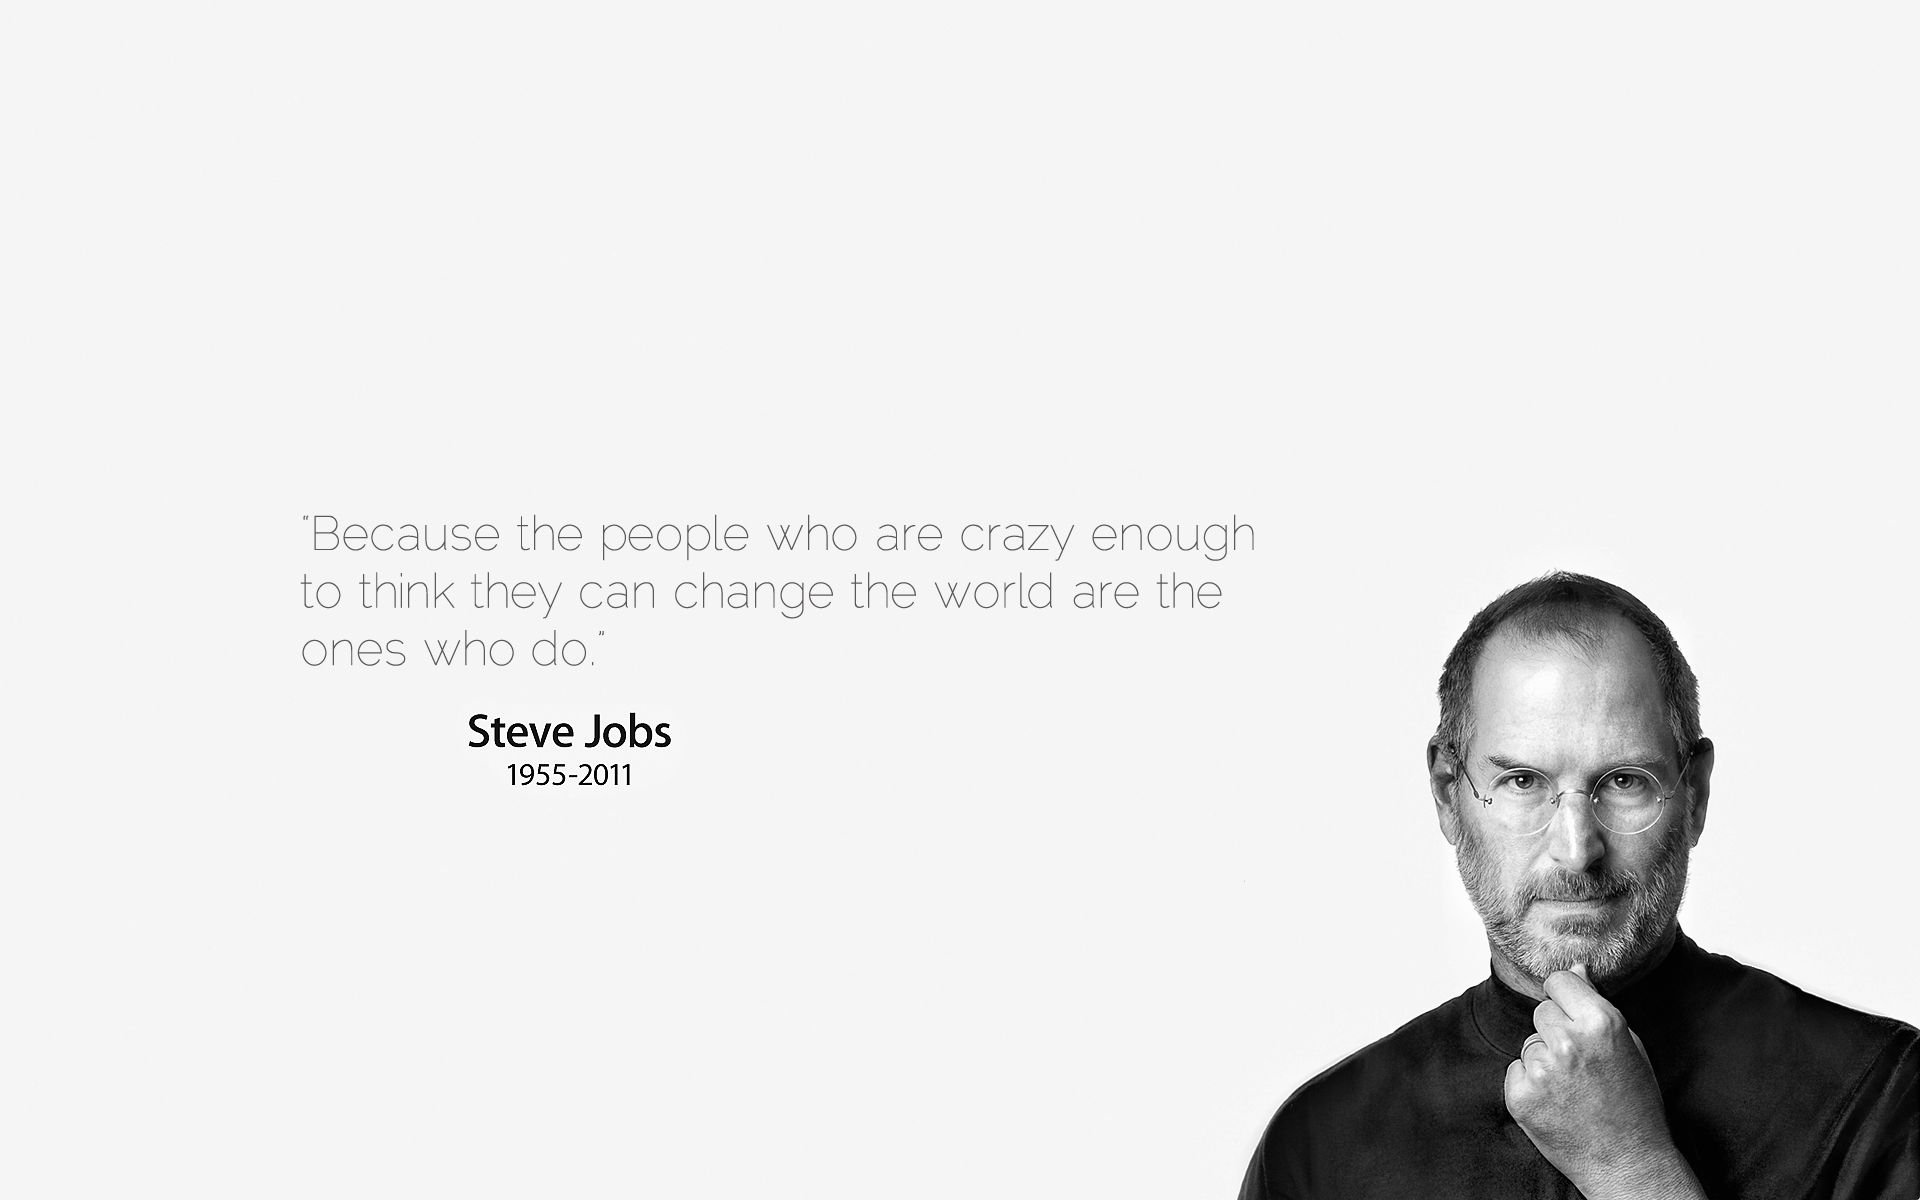 Steve Jobs Quotes Your Time Is Limited Wallpaper 10 Quotes That Will Make You Believe In Yourself Again